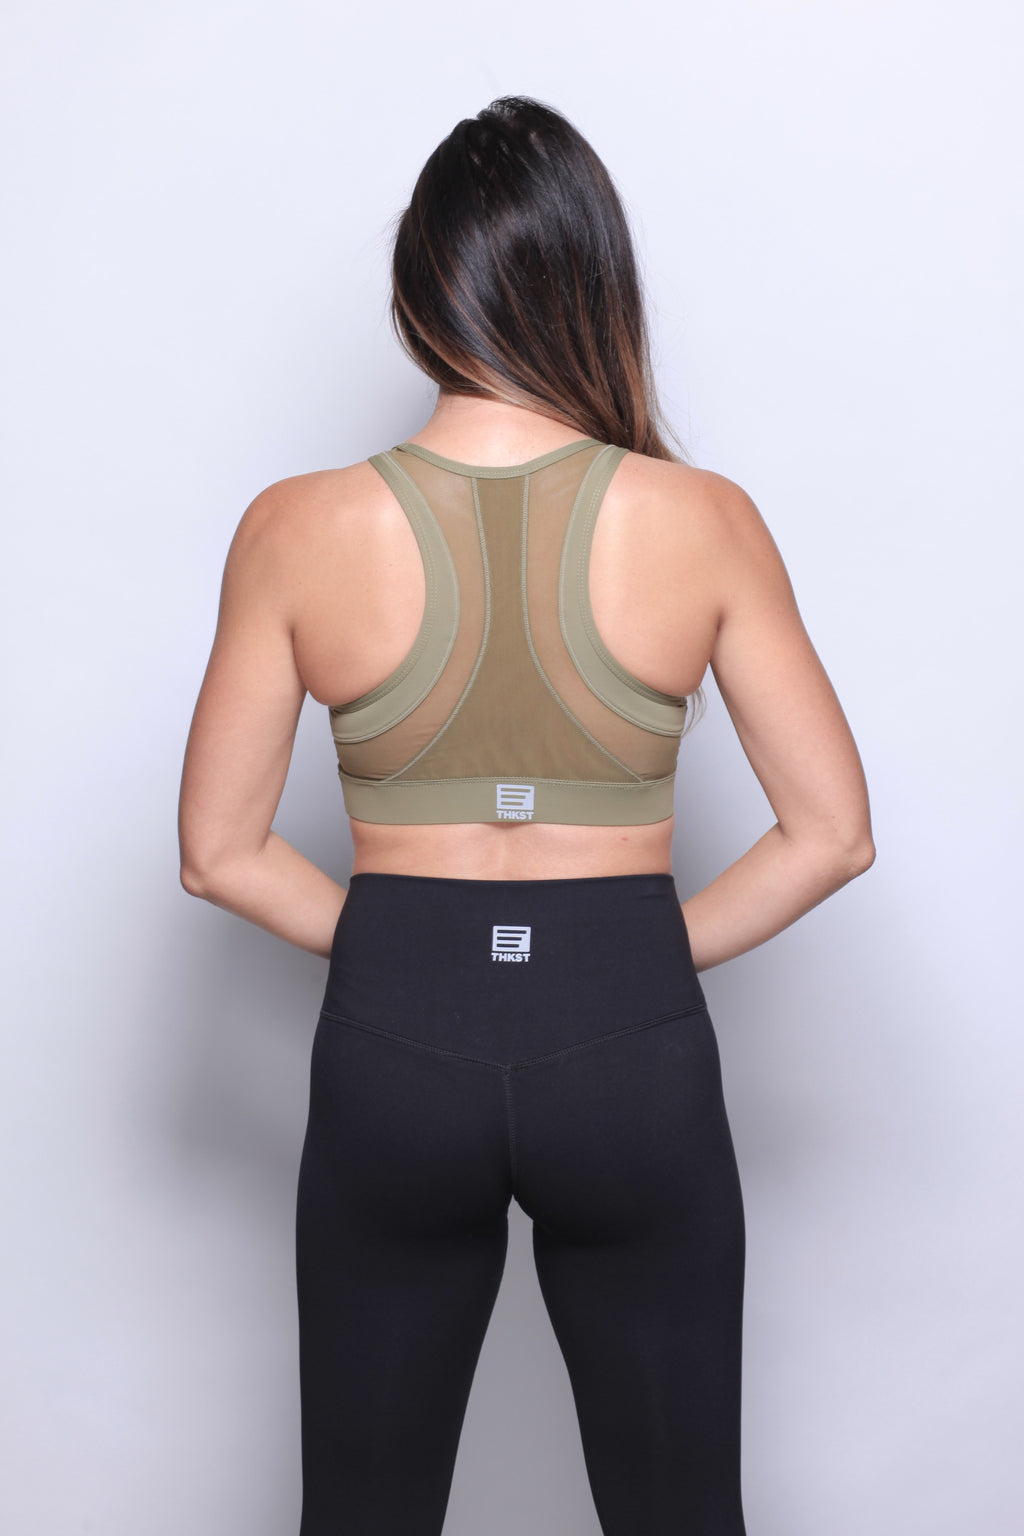 THKST Revelation Sports Bra - Green